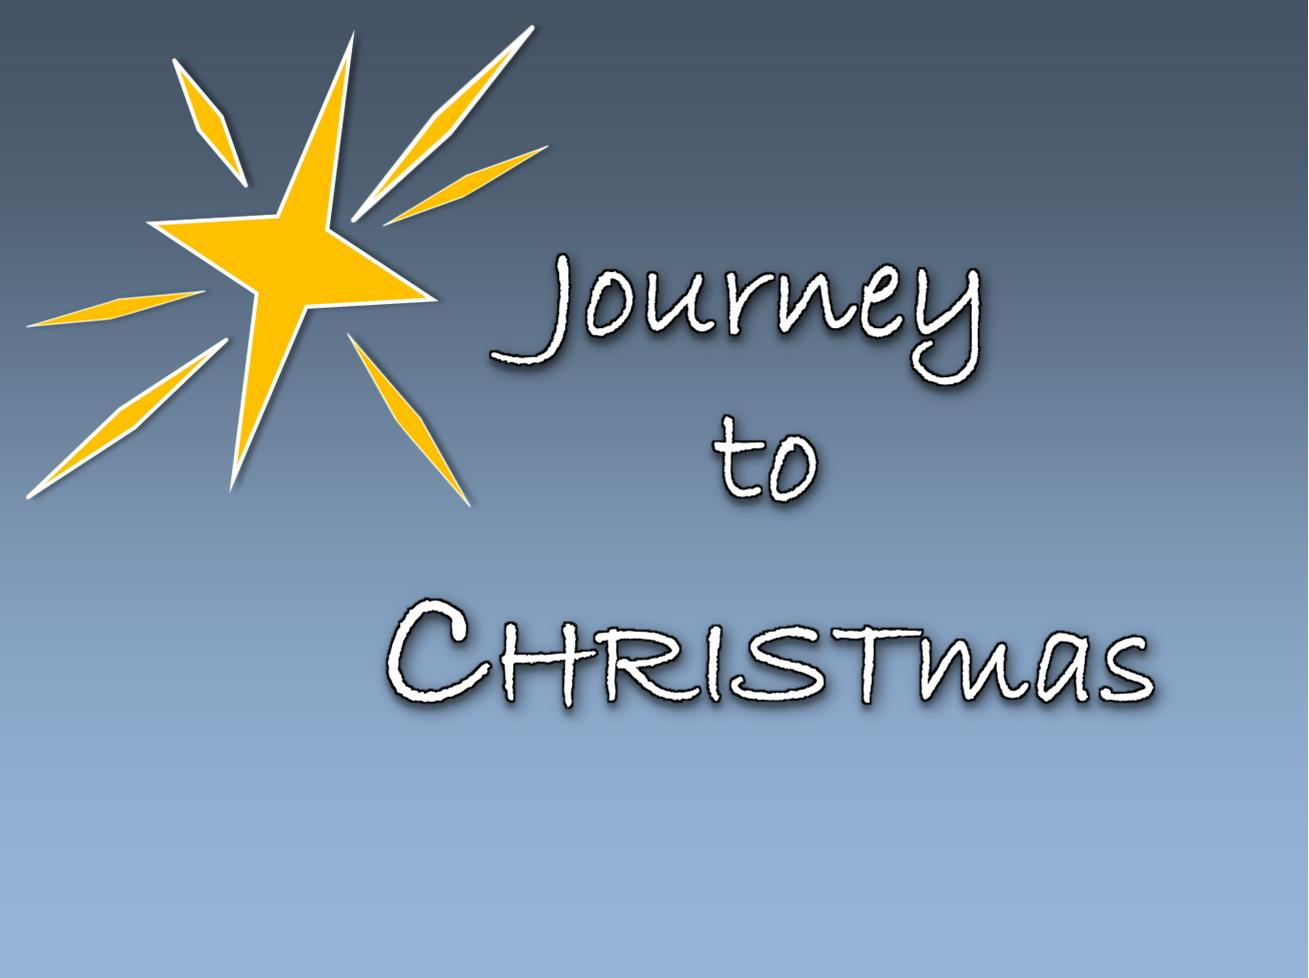 Journey to CHRISTmas!